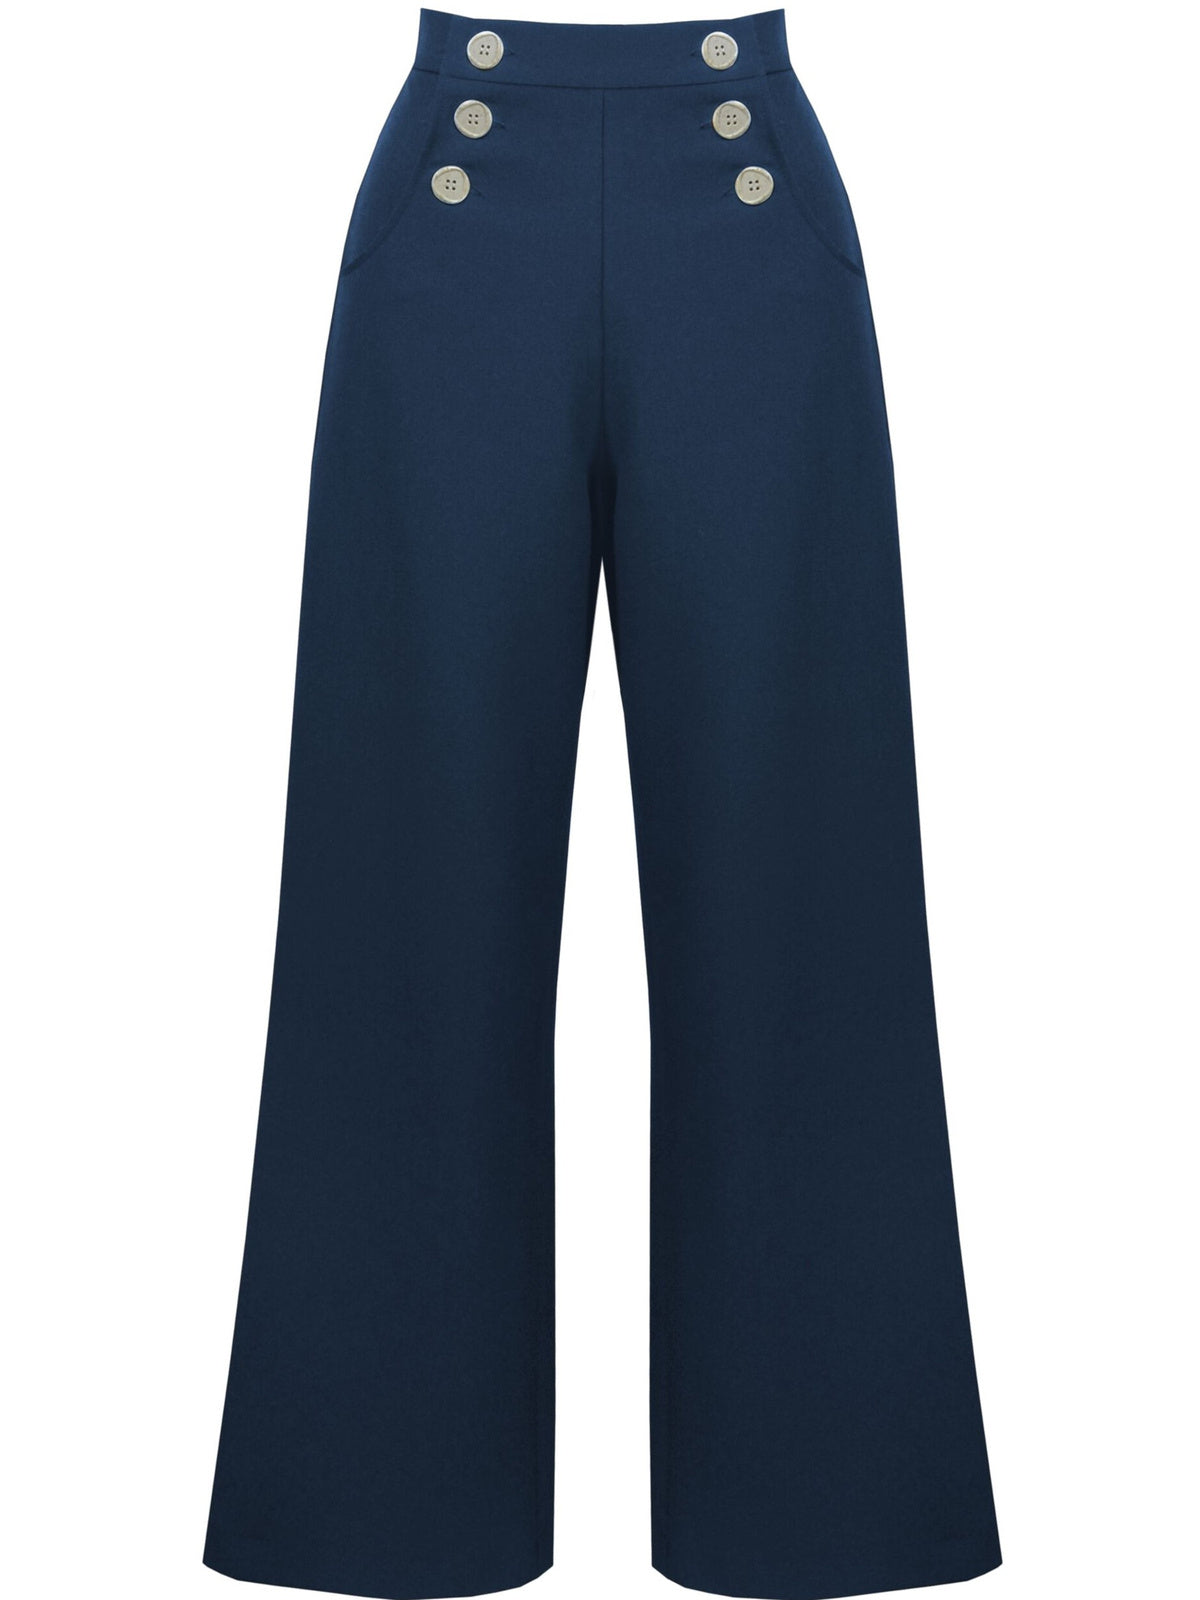 Retro Sailor Slacks - Navy